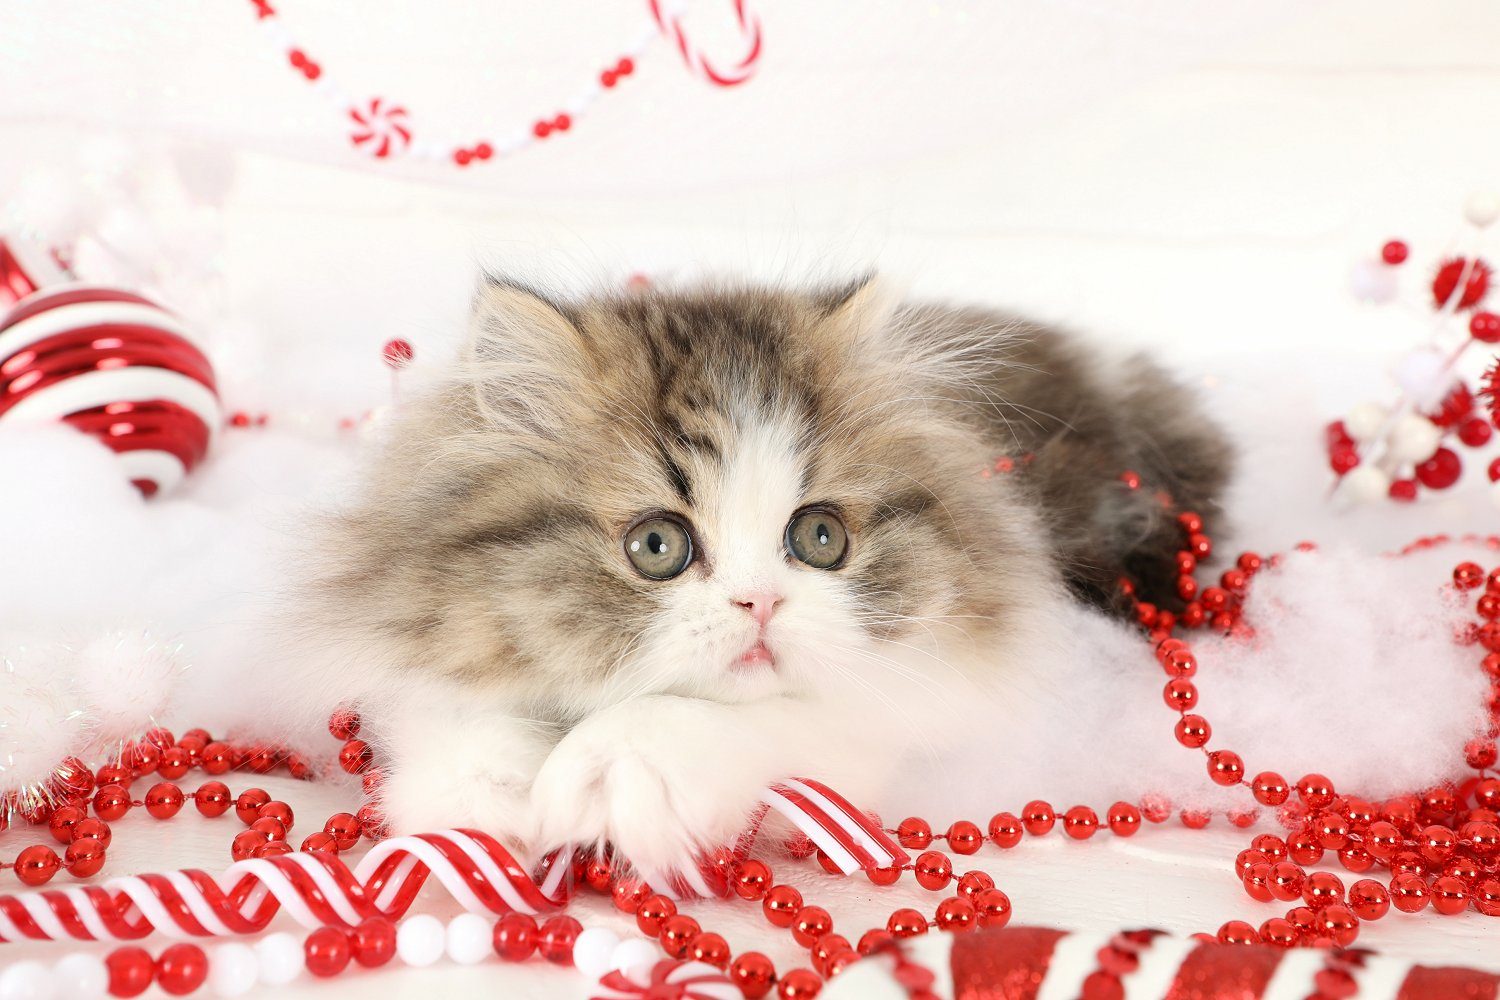 Himalayan KittensUltra Rare Persian Kittens For Sale – 660 292